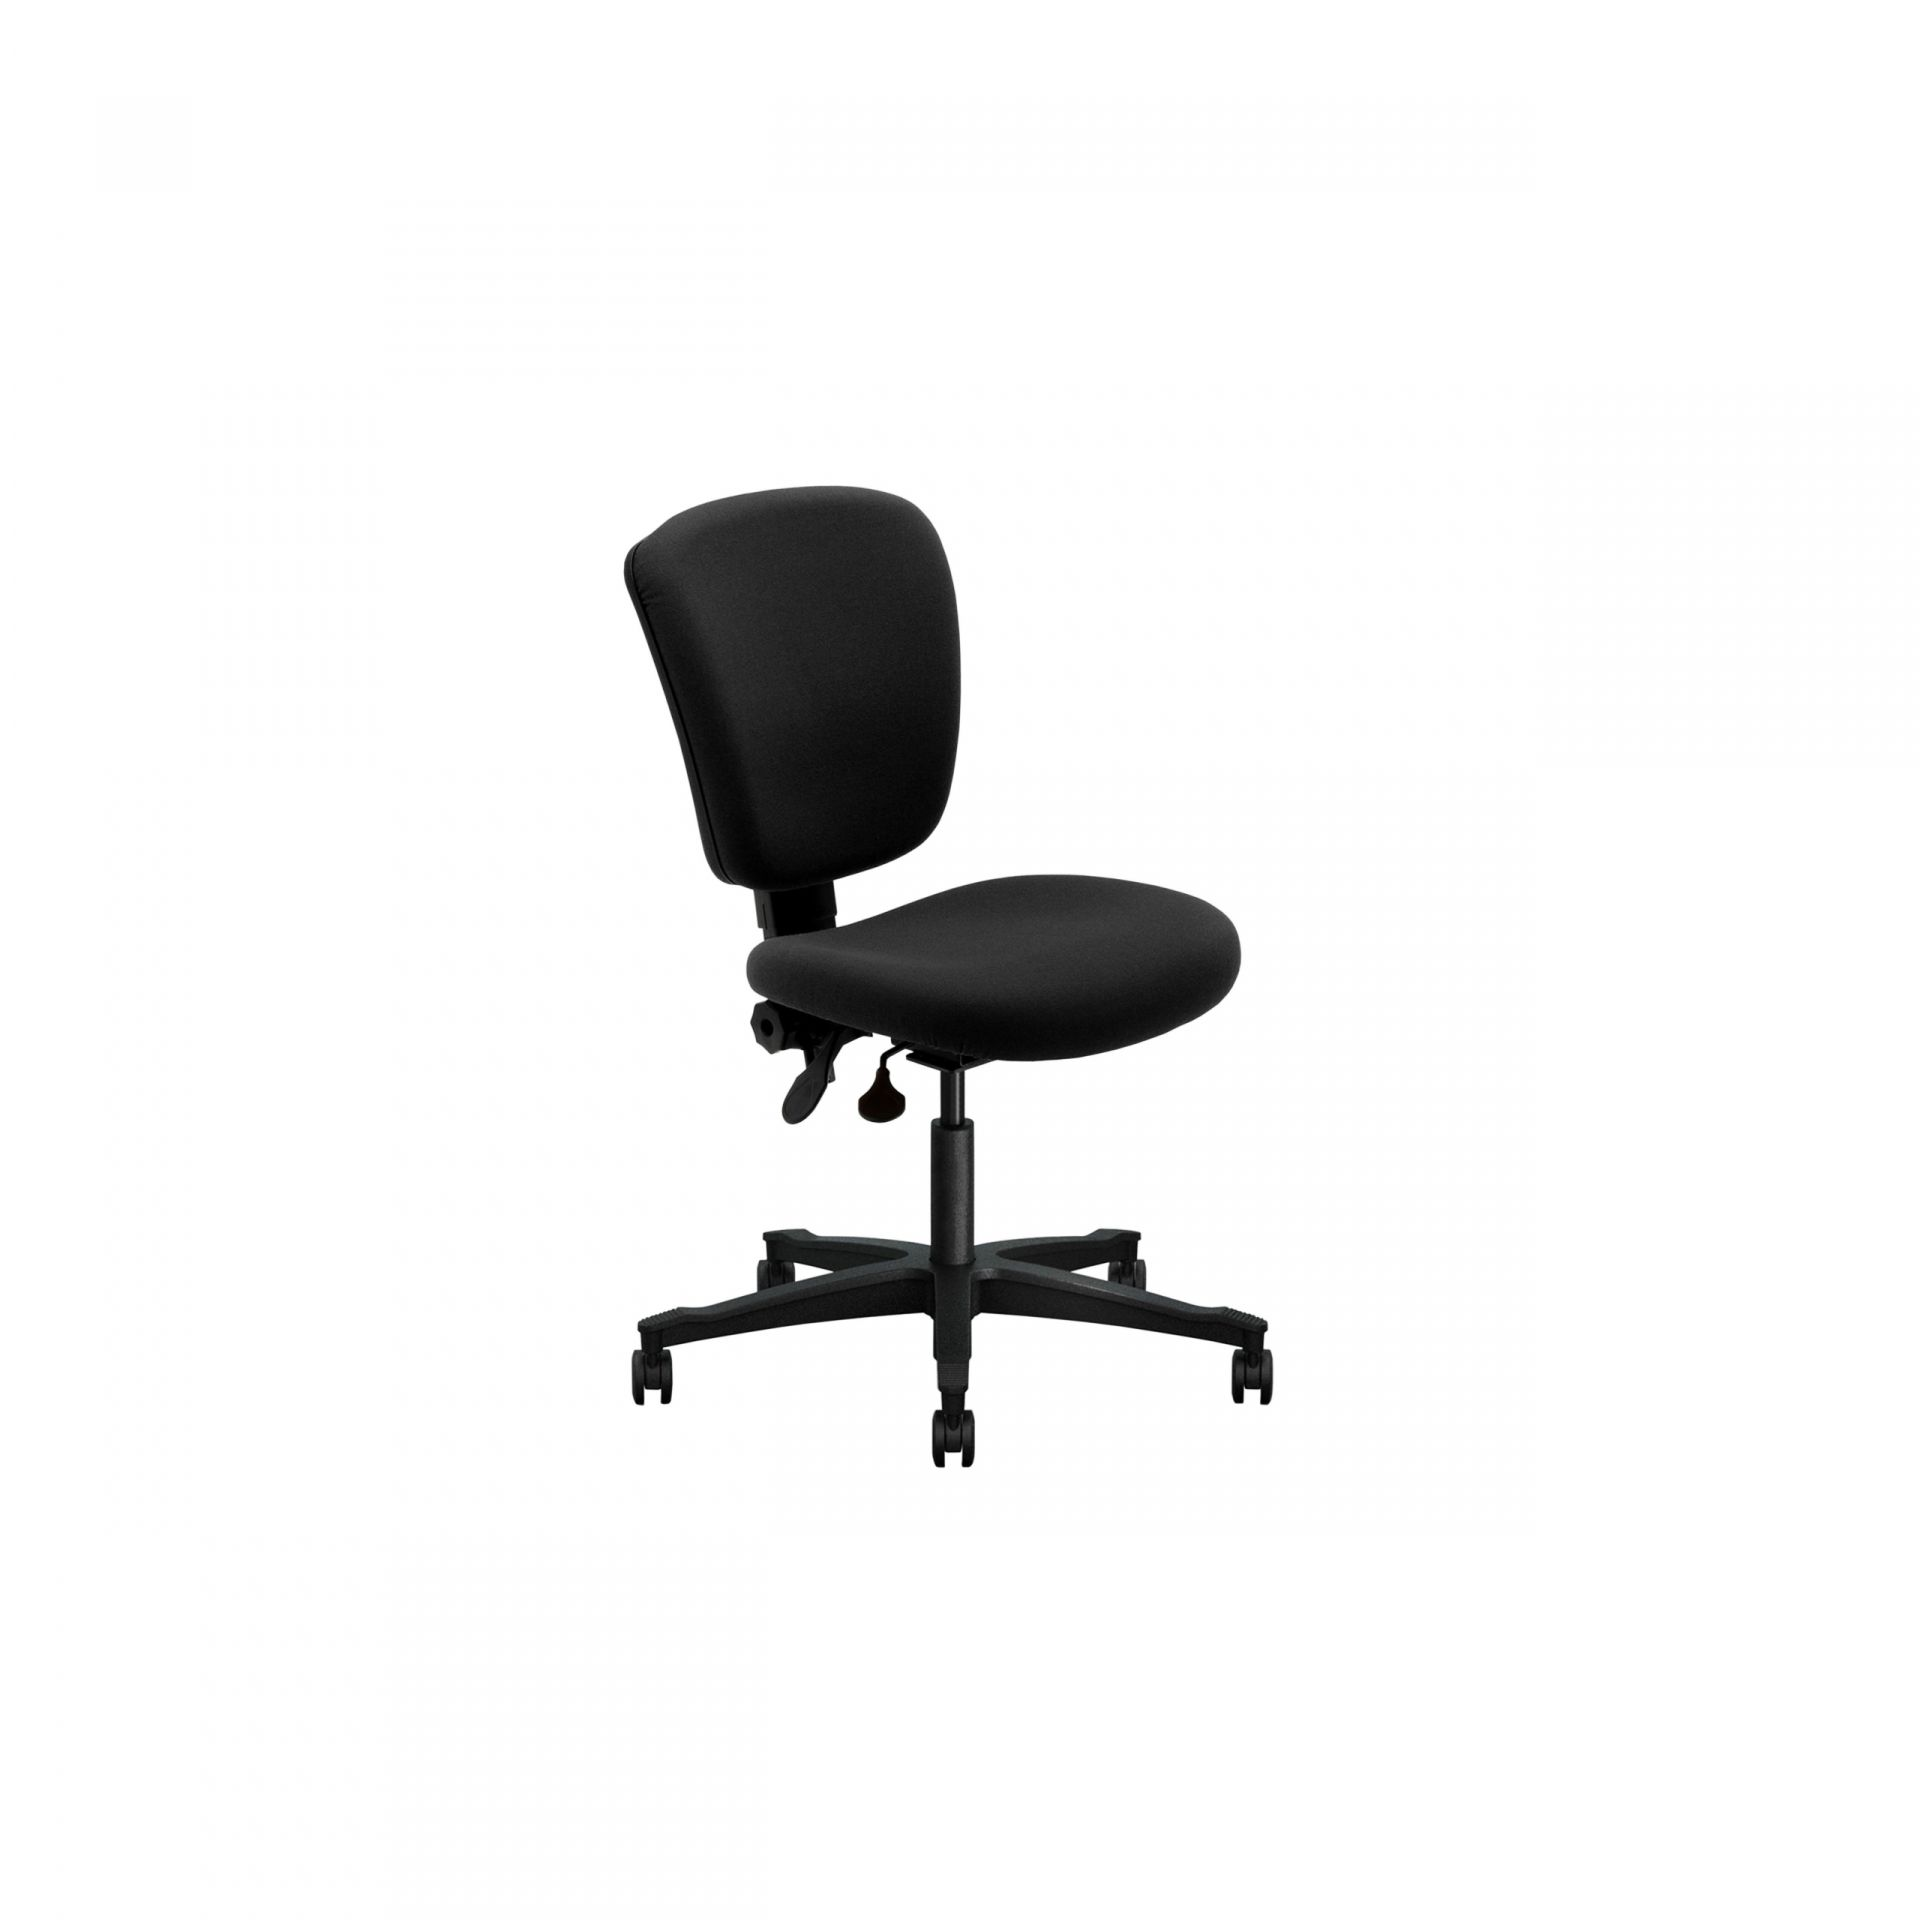 Team spirit Office chair with upholstered back